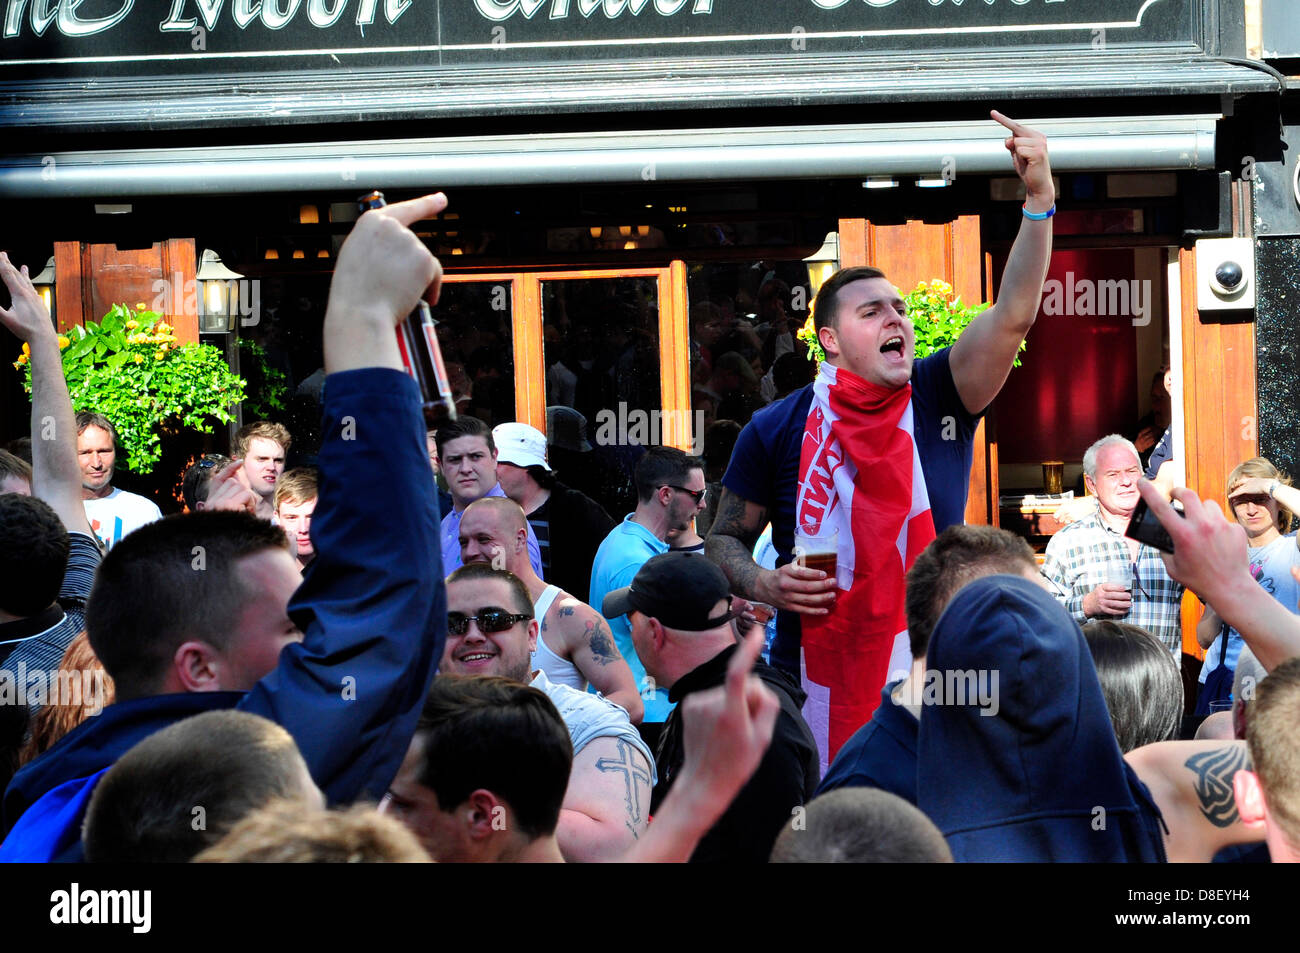 London, UK. 27 May 2013.. EDL protesters shout anti-Muslim slogans outside a pub in Leicester Square. Credit: Yanice - Stock Image